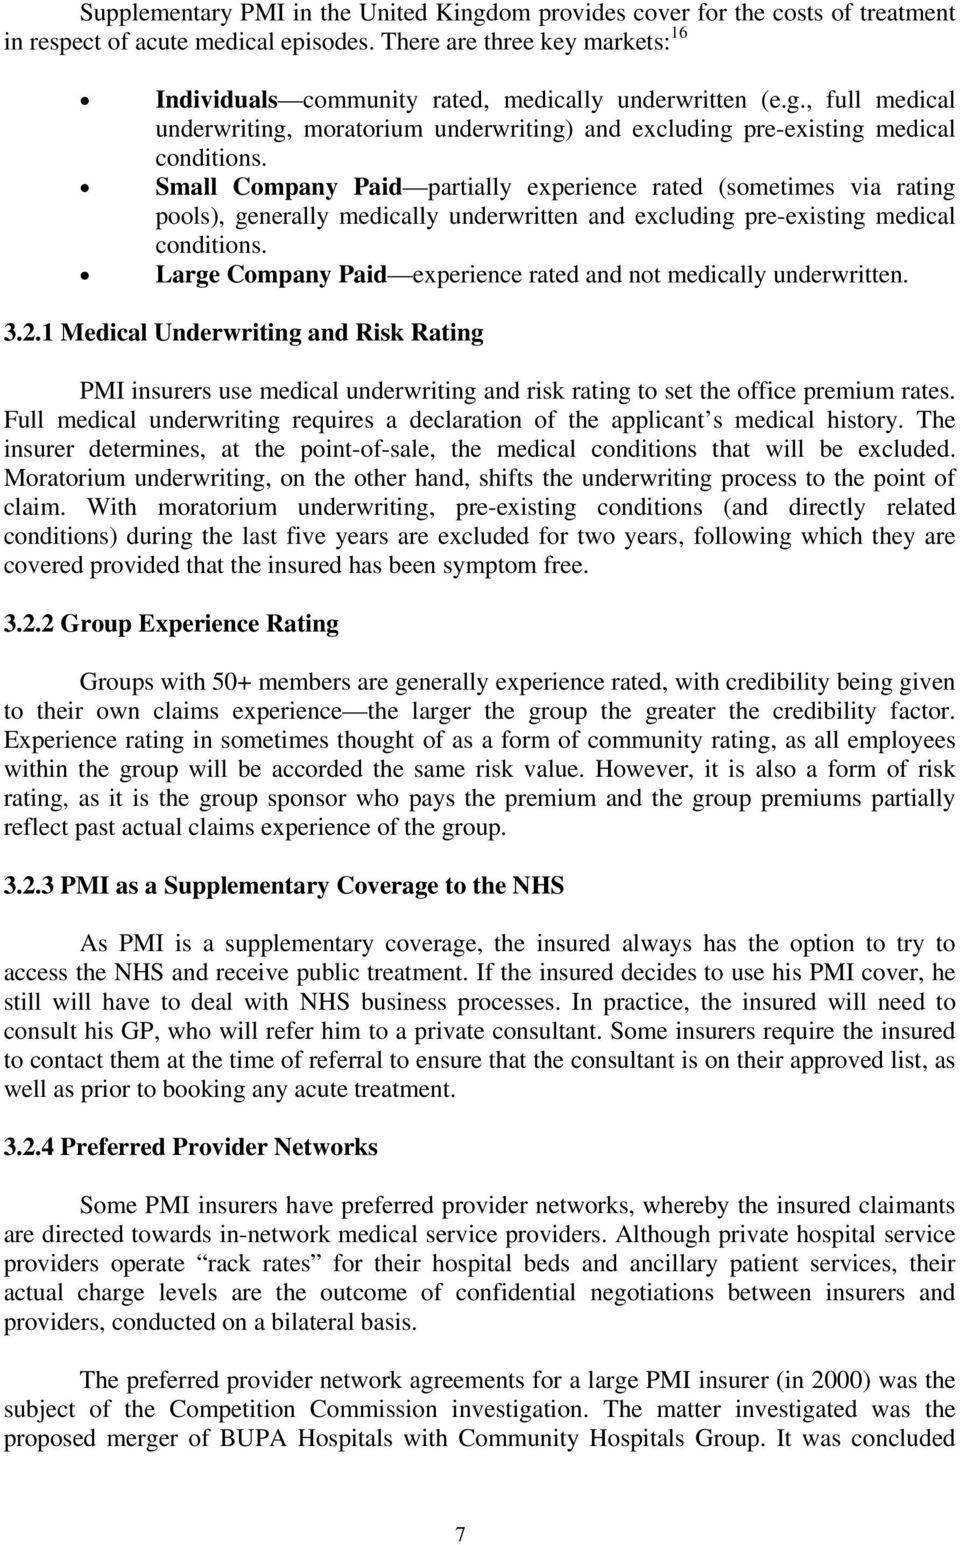 Small Company Paid partially experience rated (sometimes via rating pools), generally medically underwritten and excluding pre-existing medical conditions.